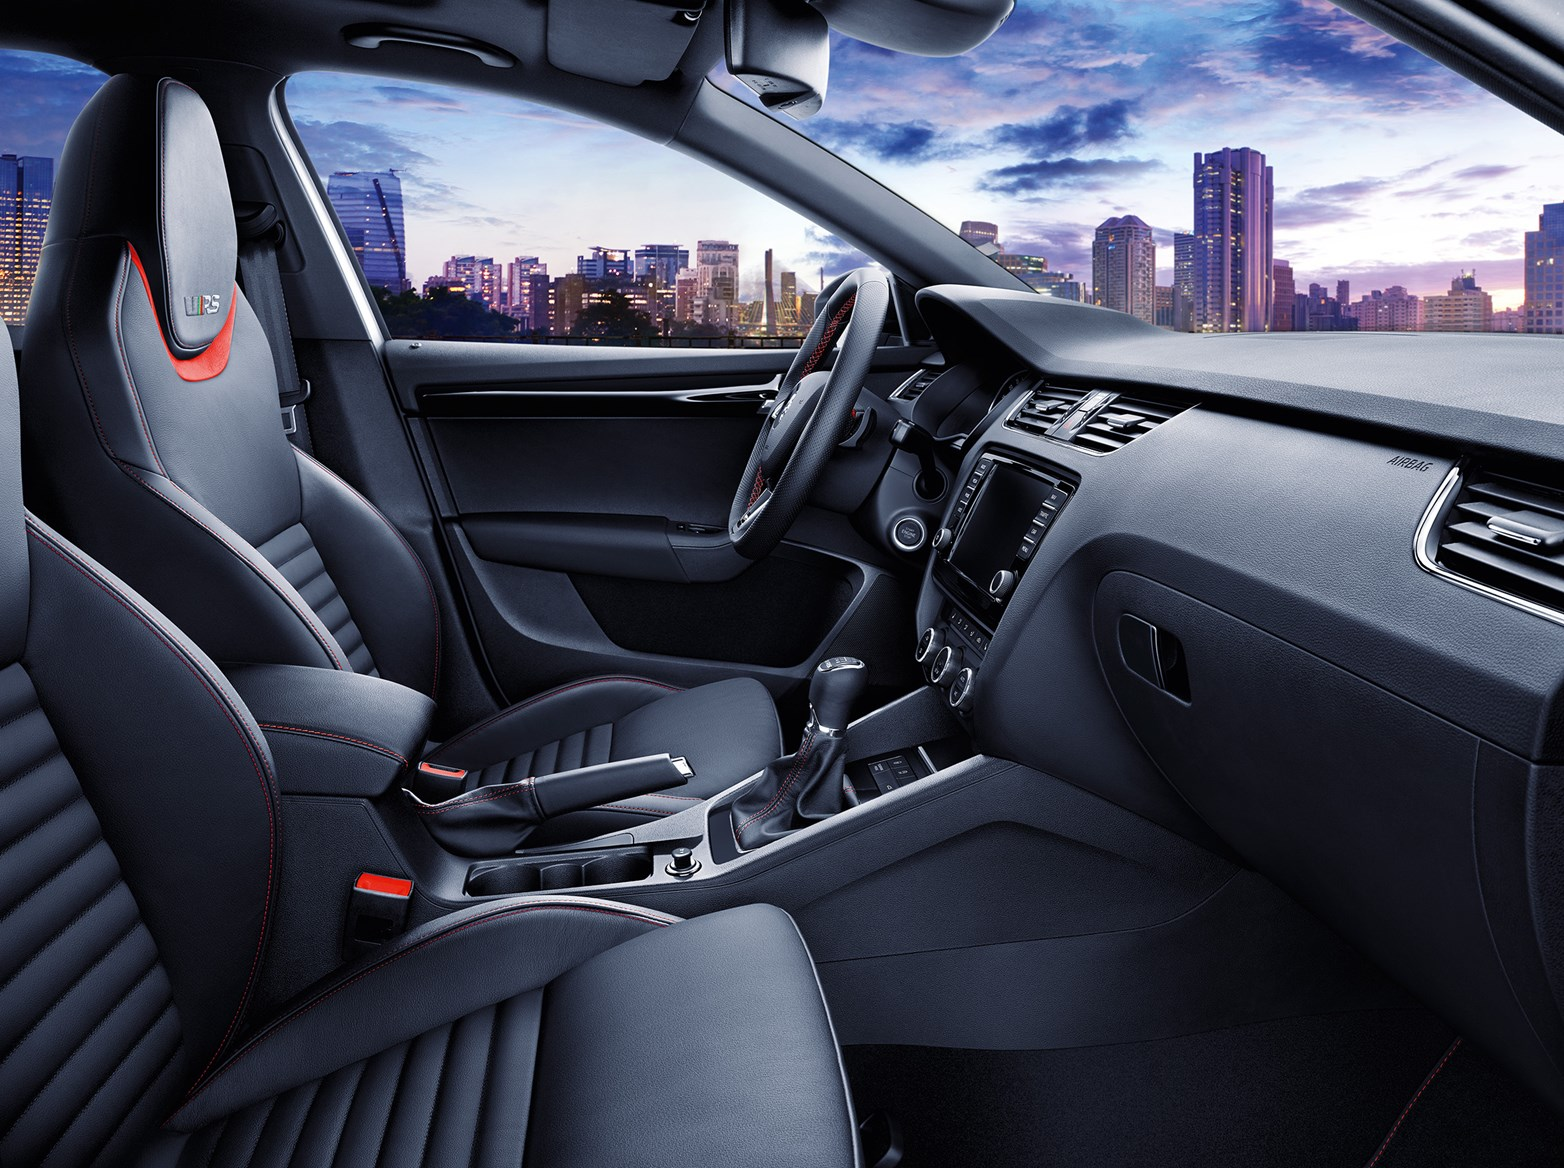 The new 2015 skoda octavia vrs 230 inside cabin of new octavia vrs 230